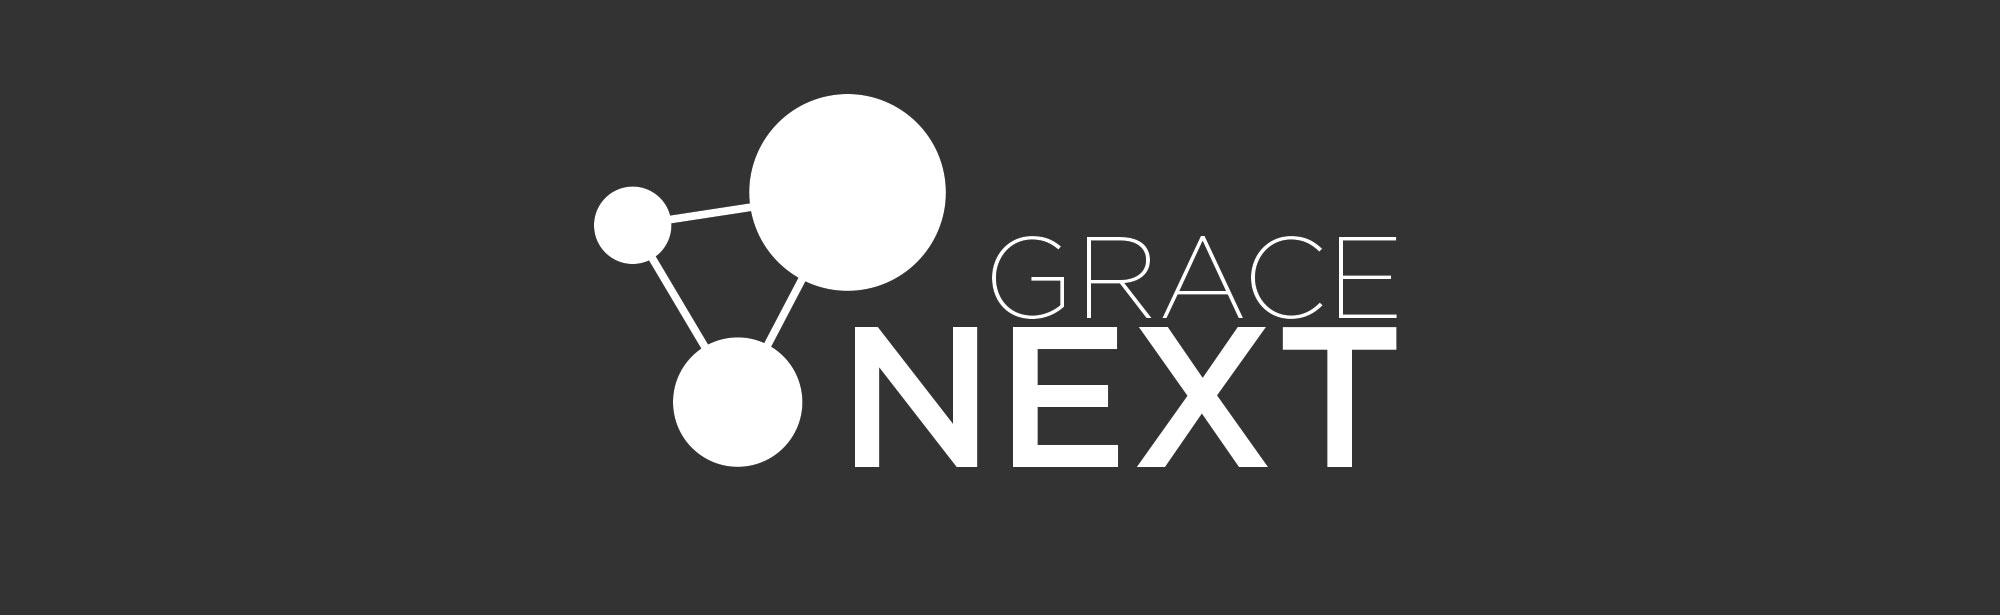 Grace Next - Membership - Grace Community Church